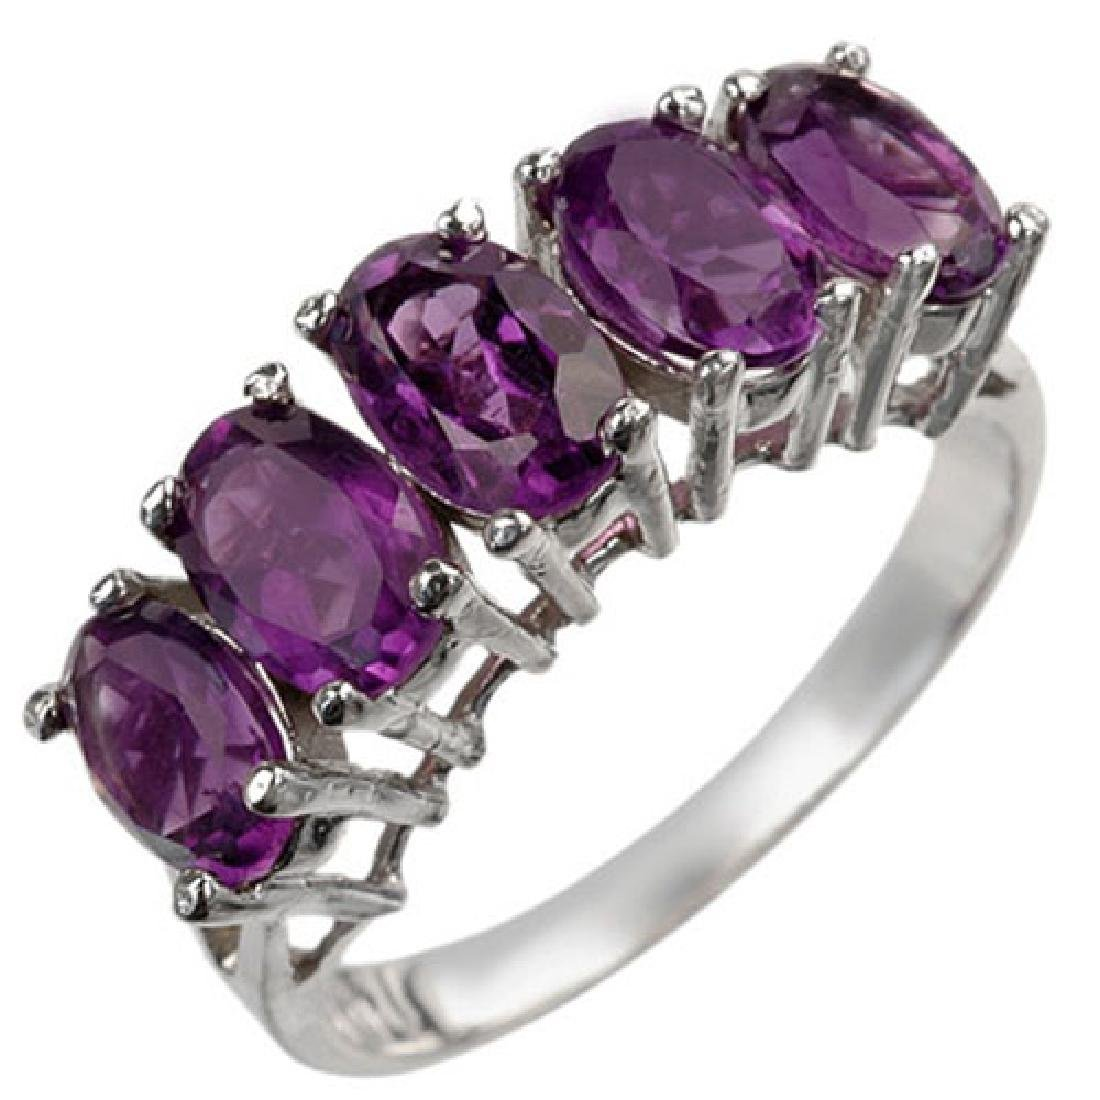 2.0 CTW Amethyst Ring 10K White Gold